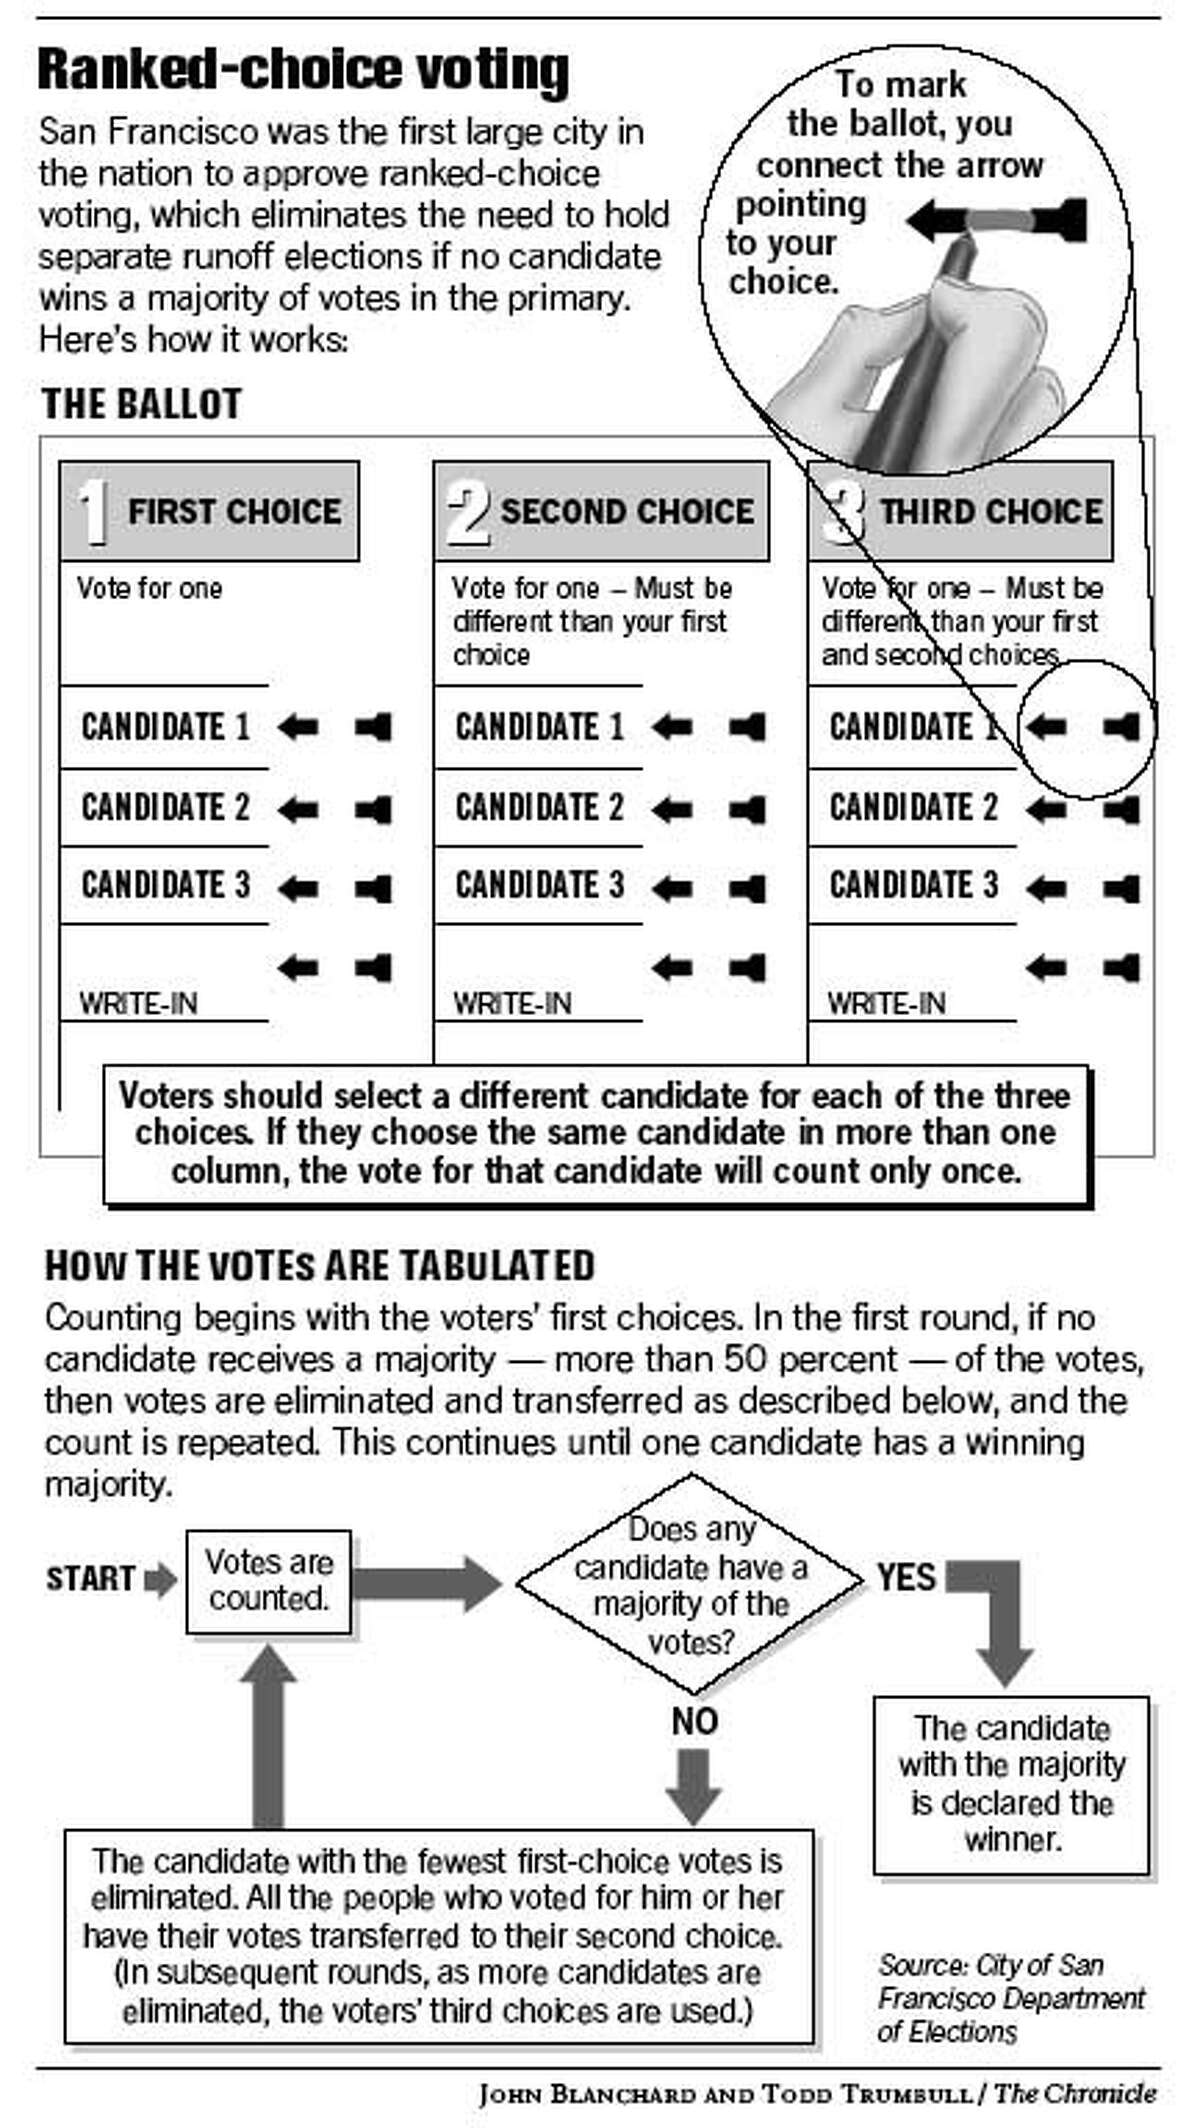 Ranked-Choice Voting. Chronicle graphic by John Blanchard and Todd Trumbull